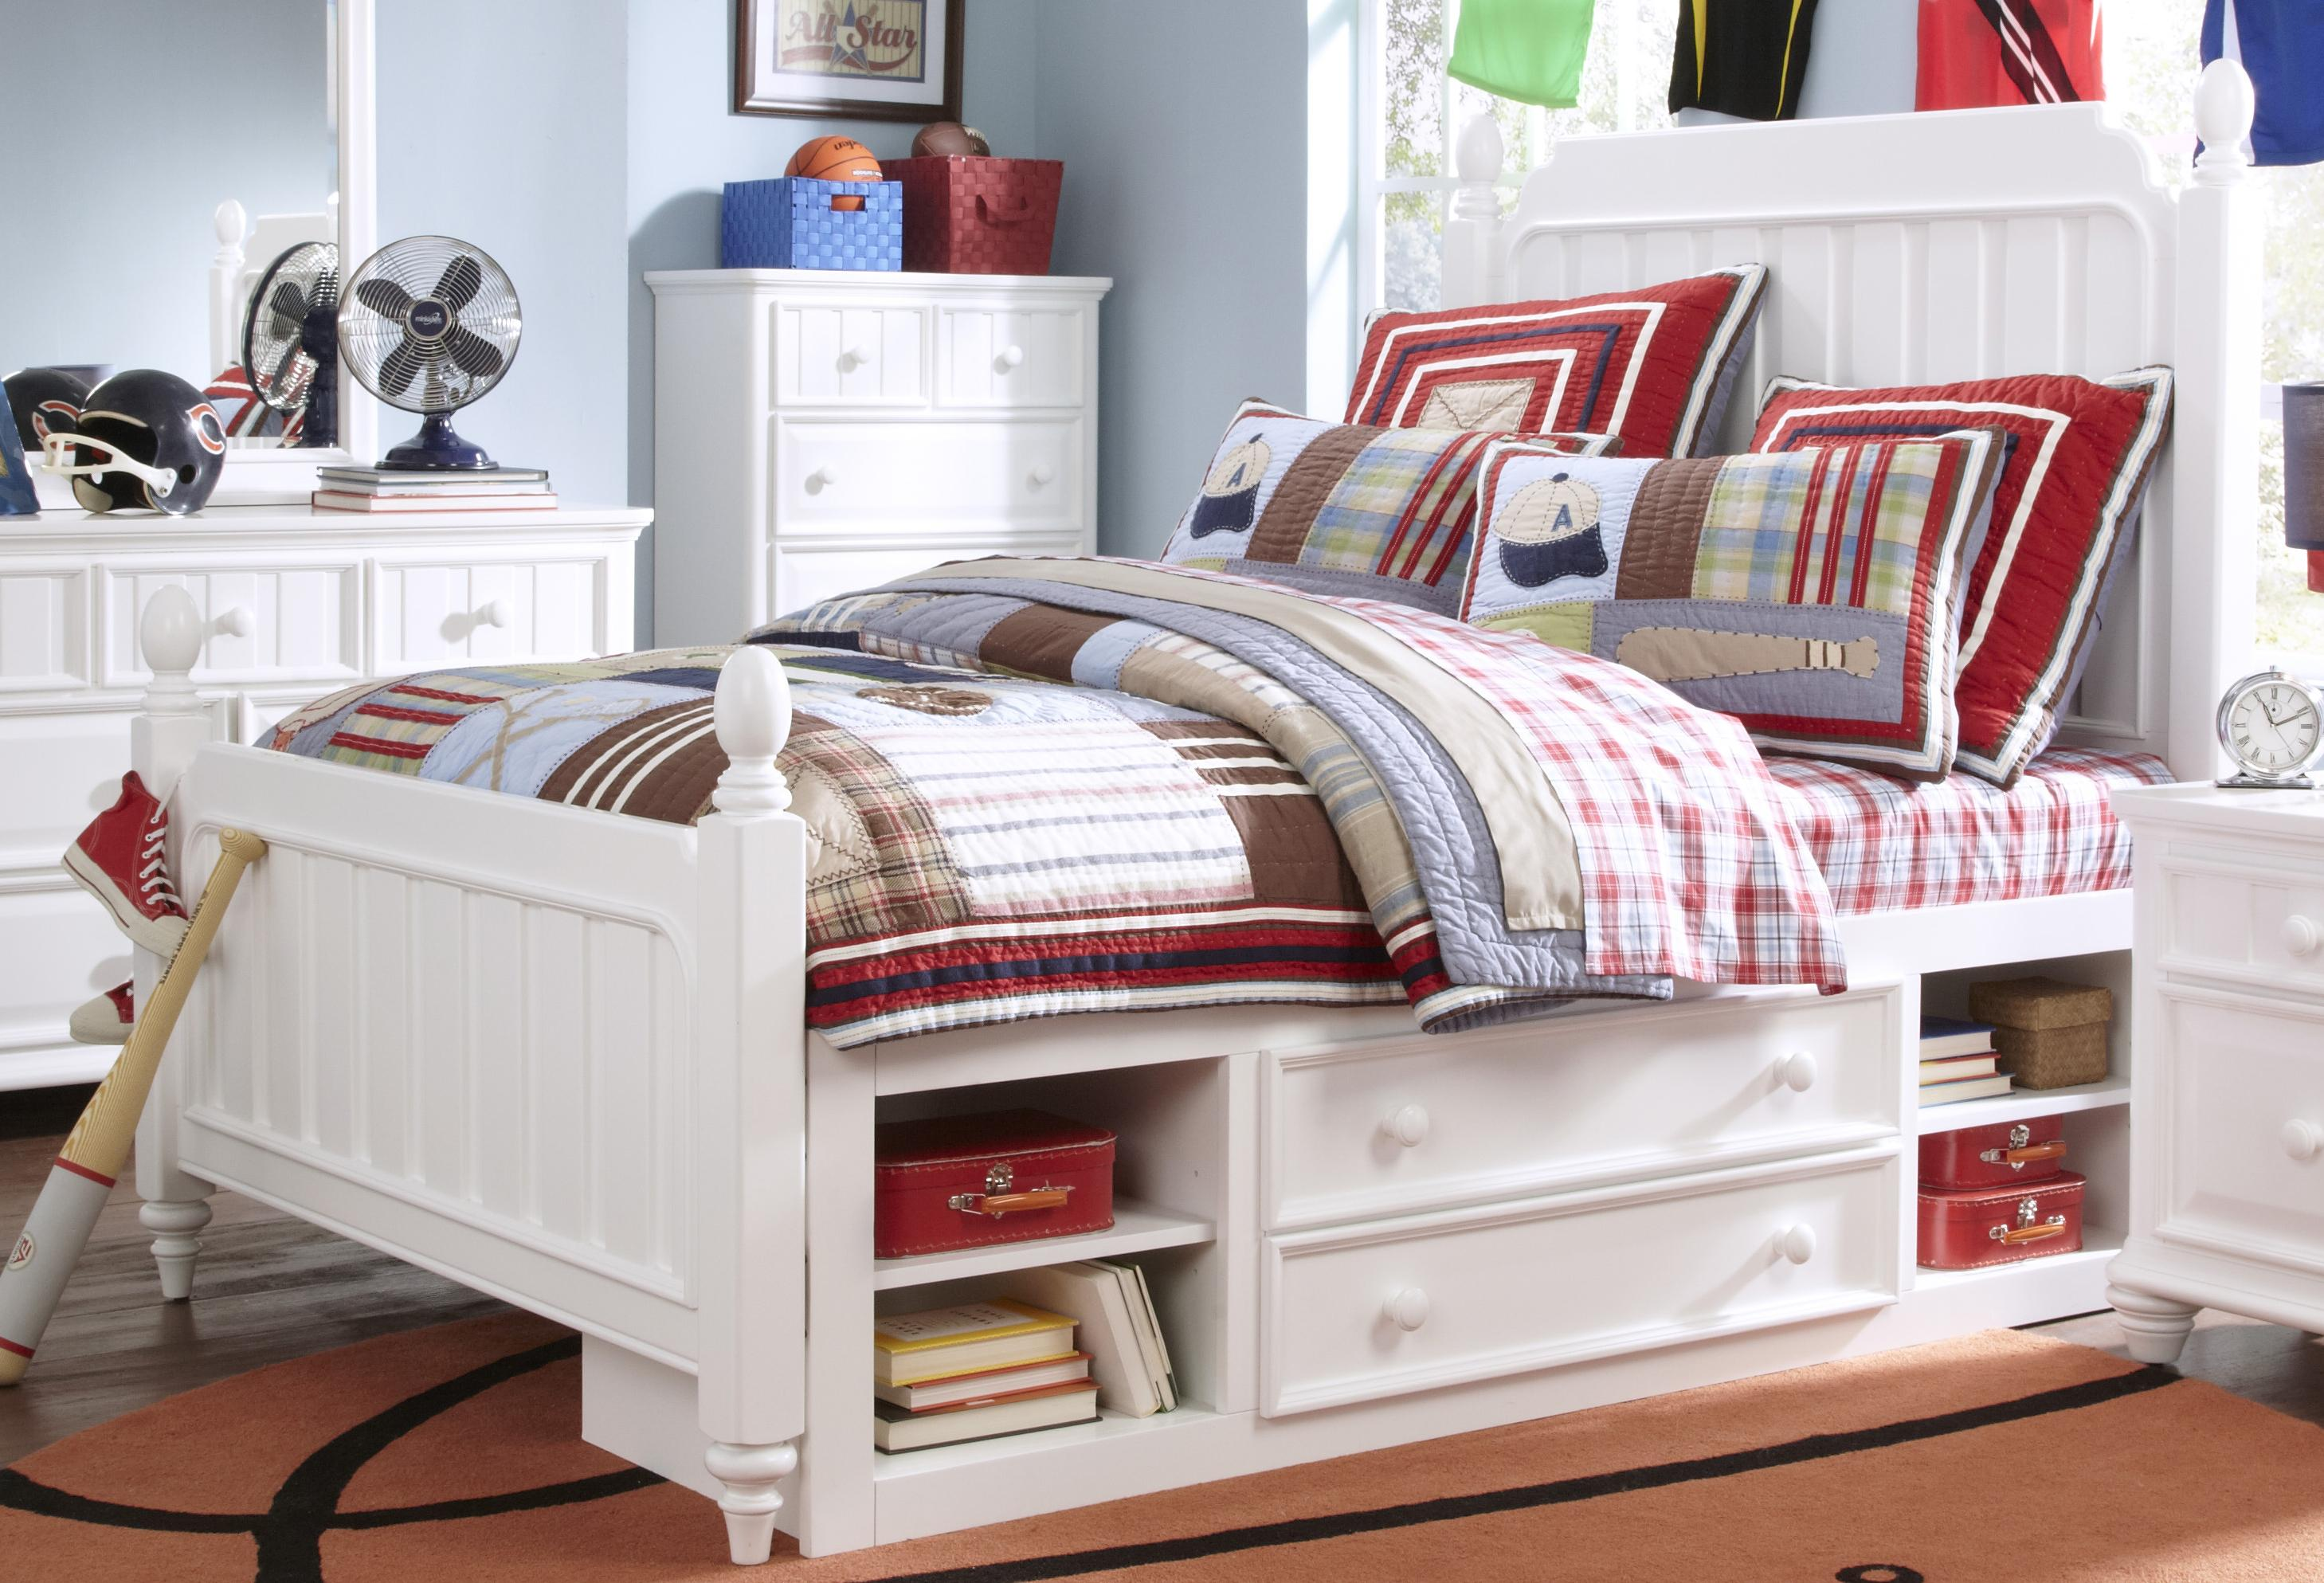 Kidz Gear Campbell Twin Bed with Underbed Storage - Item Number: 8466-630+631+401+SLATR-33+643